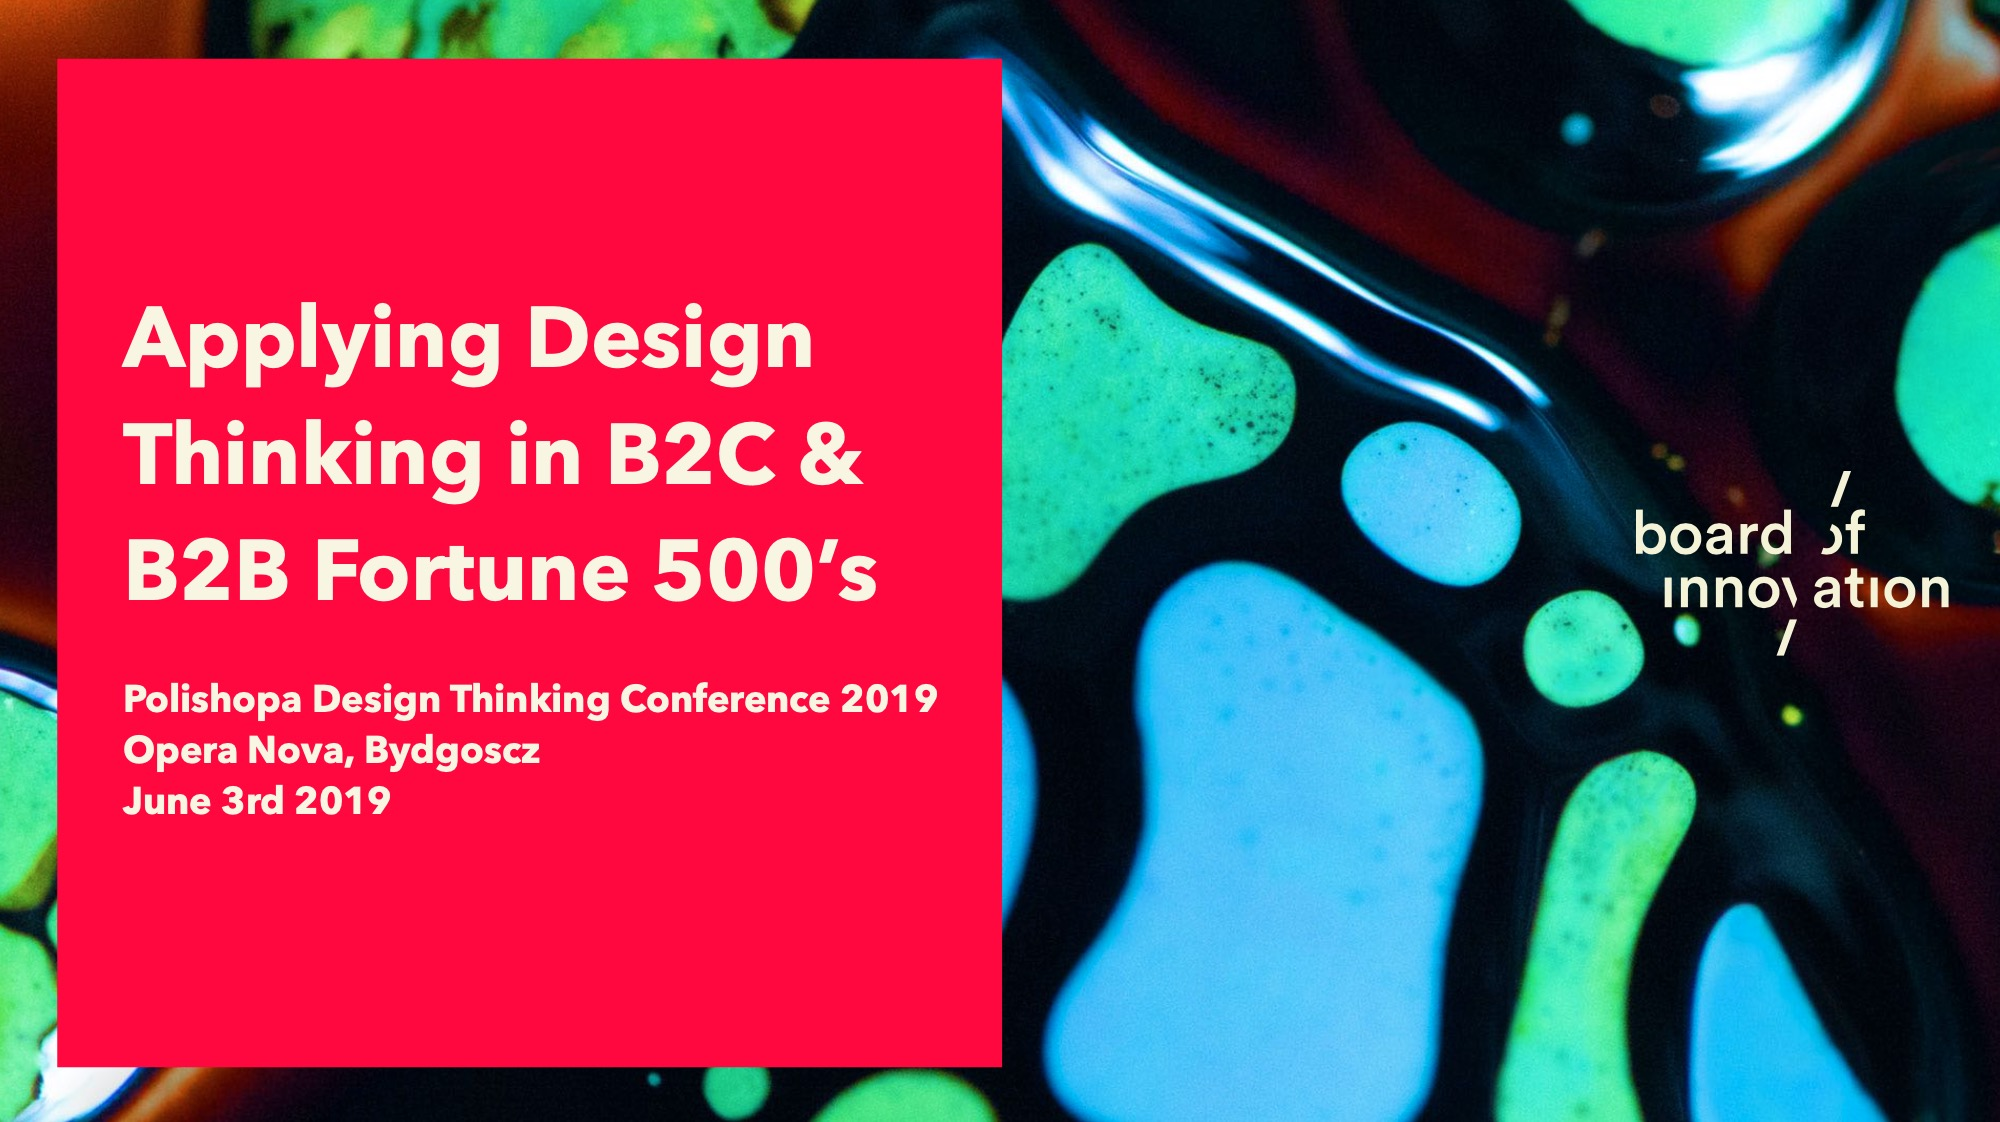 Applying Design Thinking in B2C and B2B Fortune 500